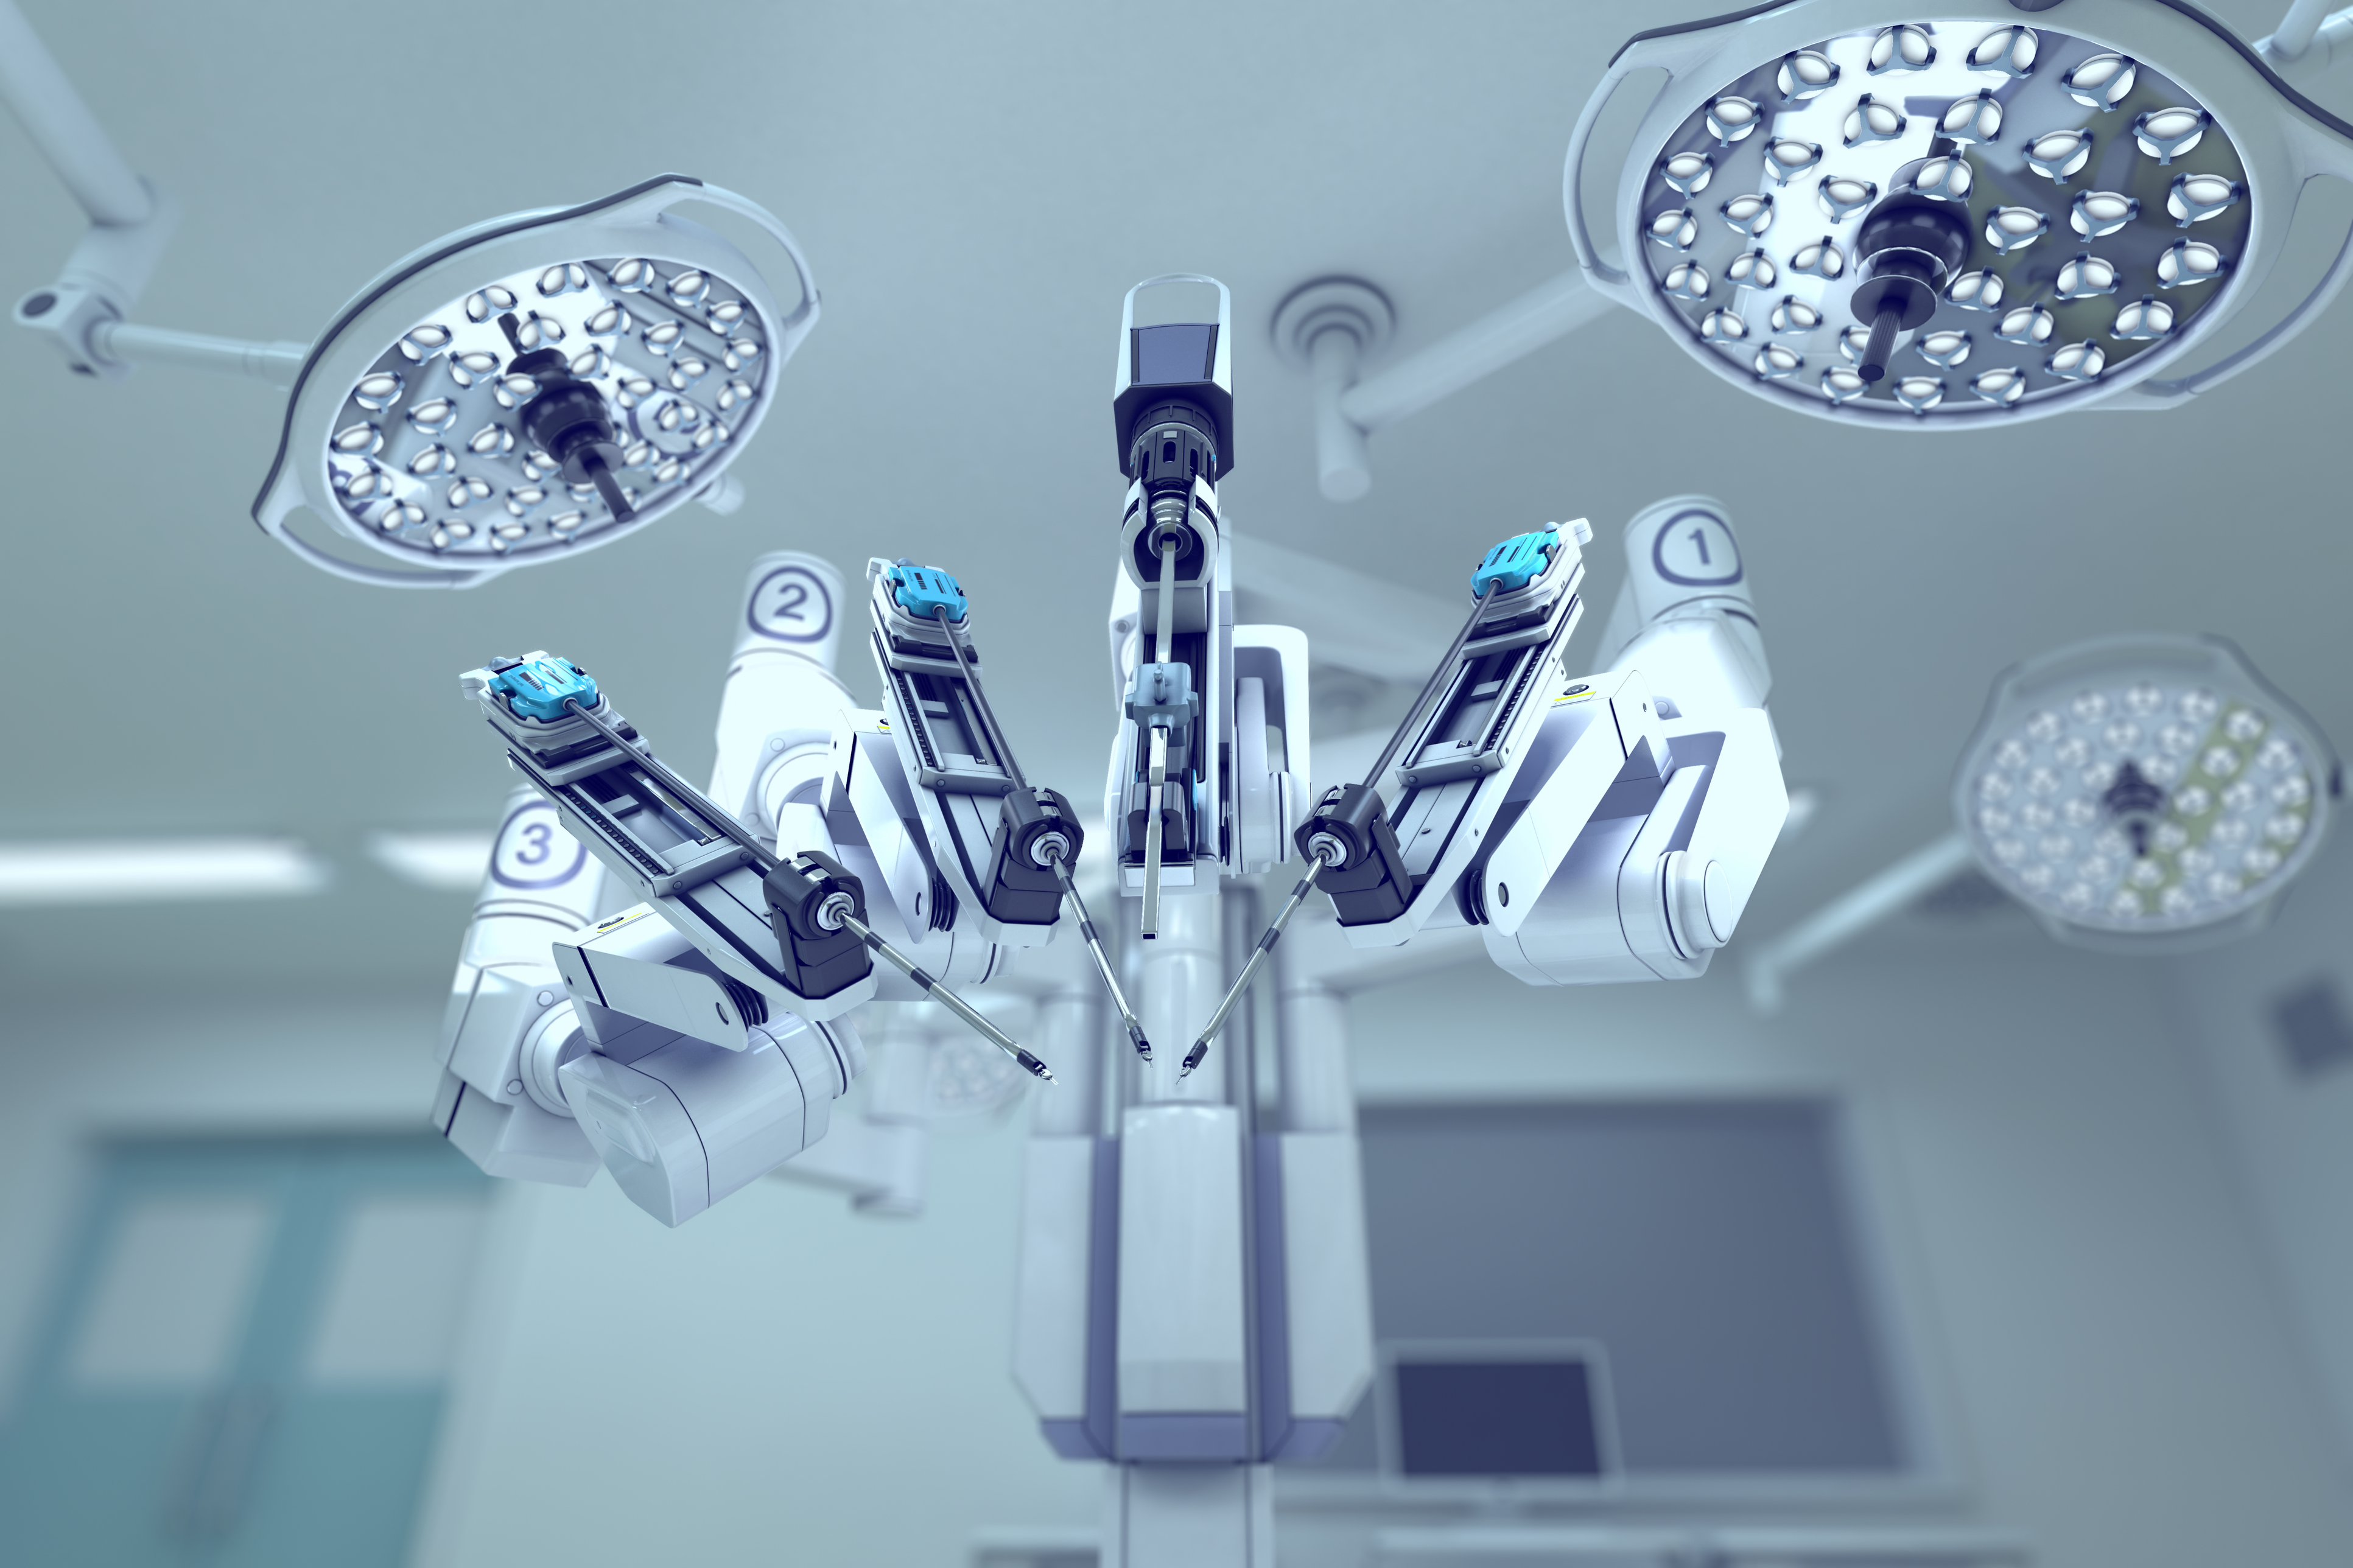 The Essential Role of Informed Consent in Robotic Surgery